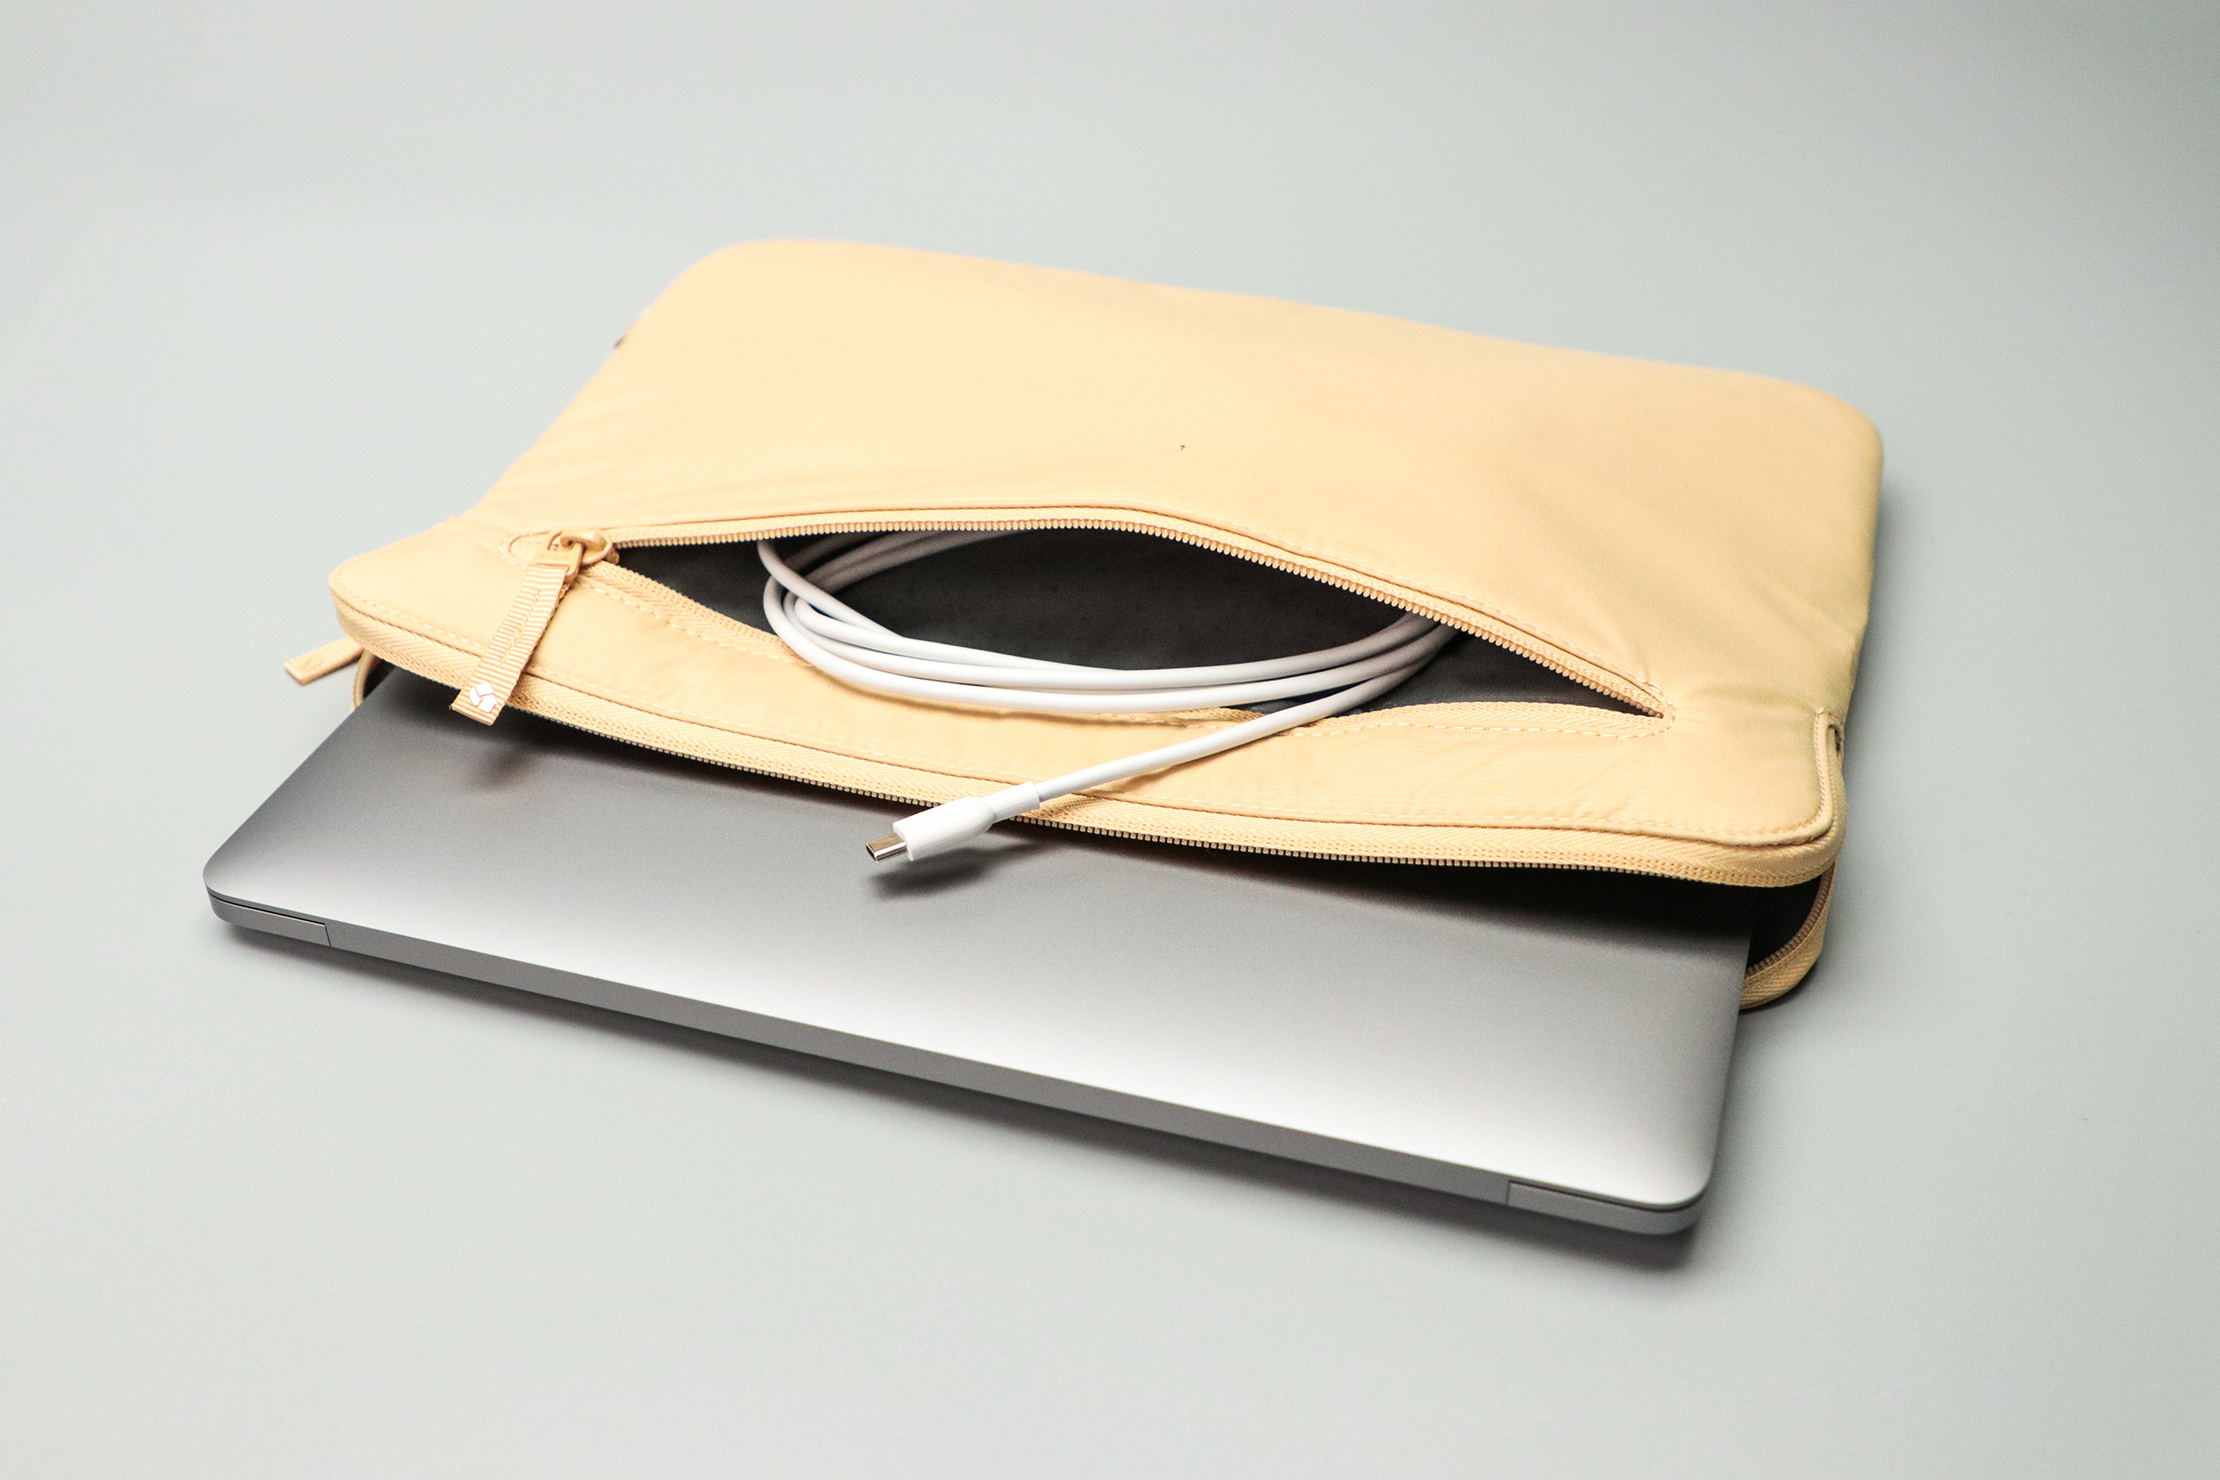 Incase Compact Sleeve with BIONIC front pocket